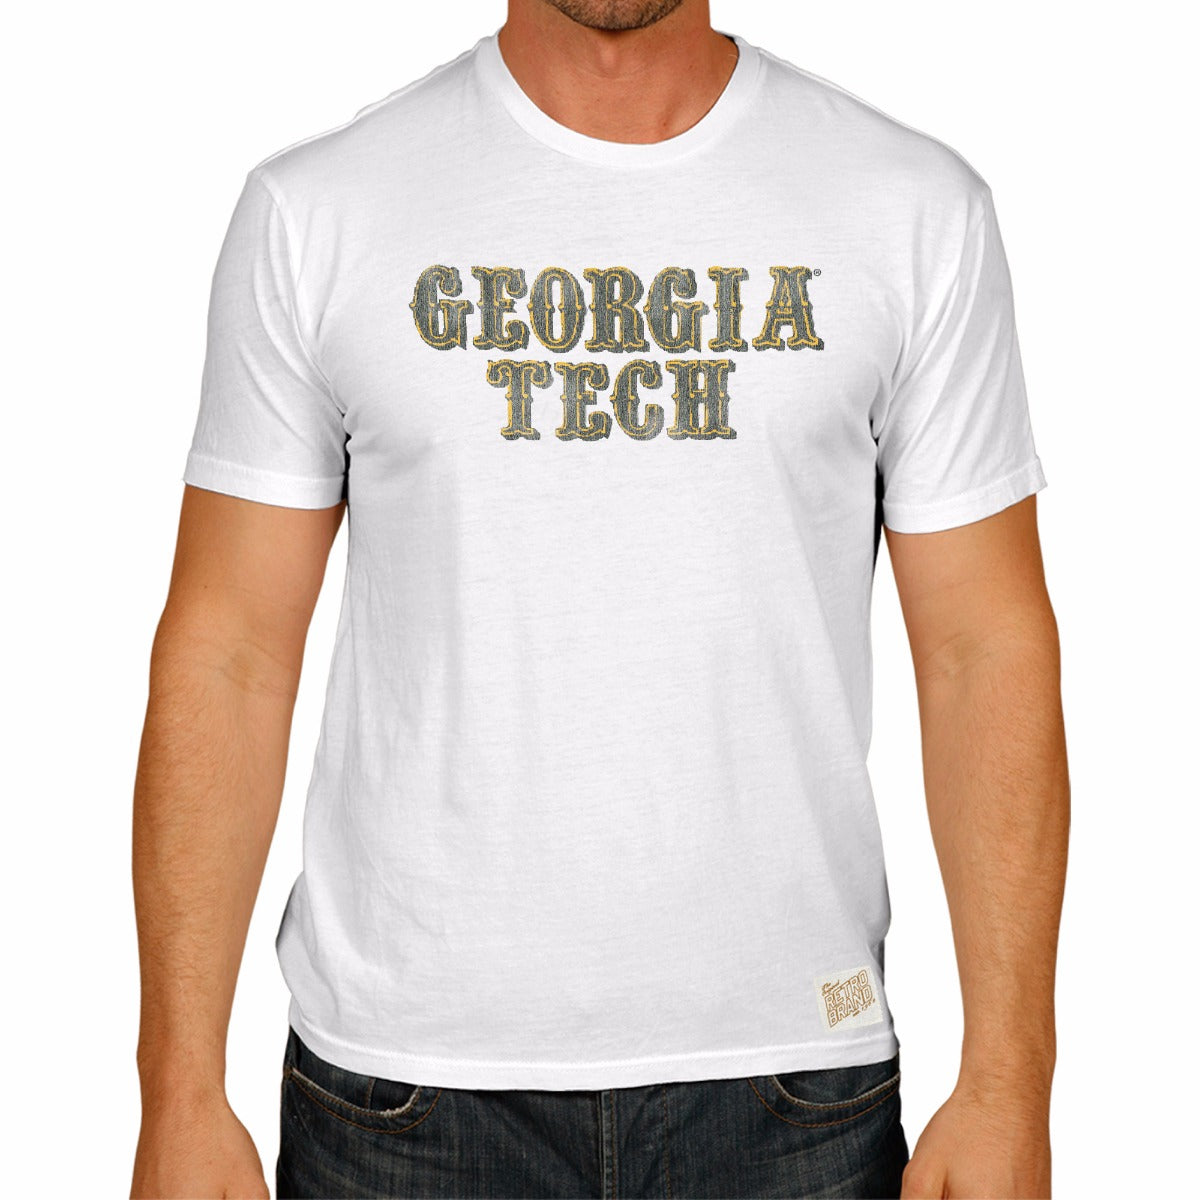 Georgia Tech Yellow Jackets 100% Cotton Unisex Tee